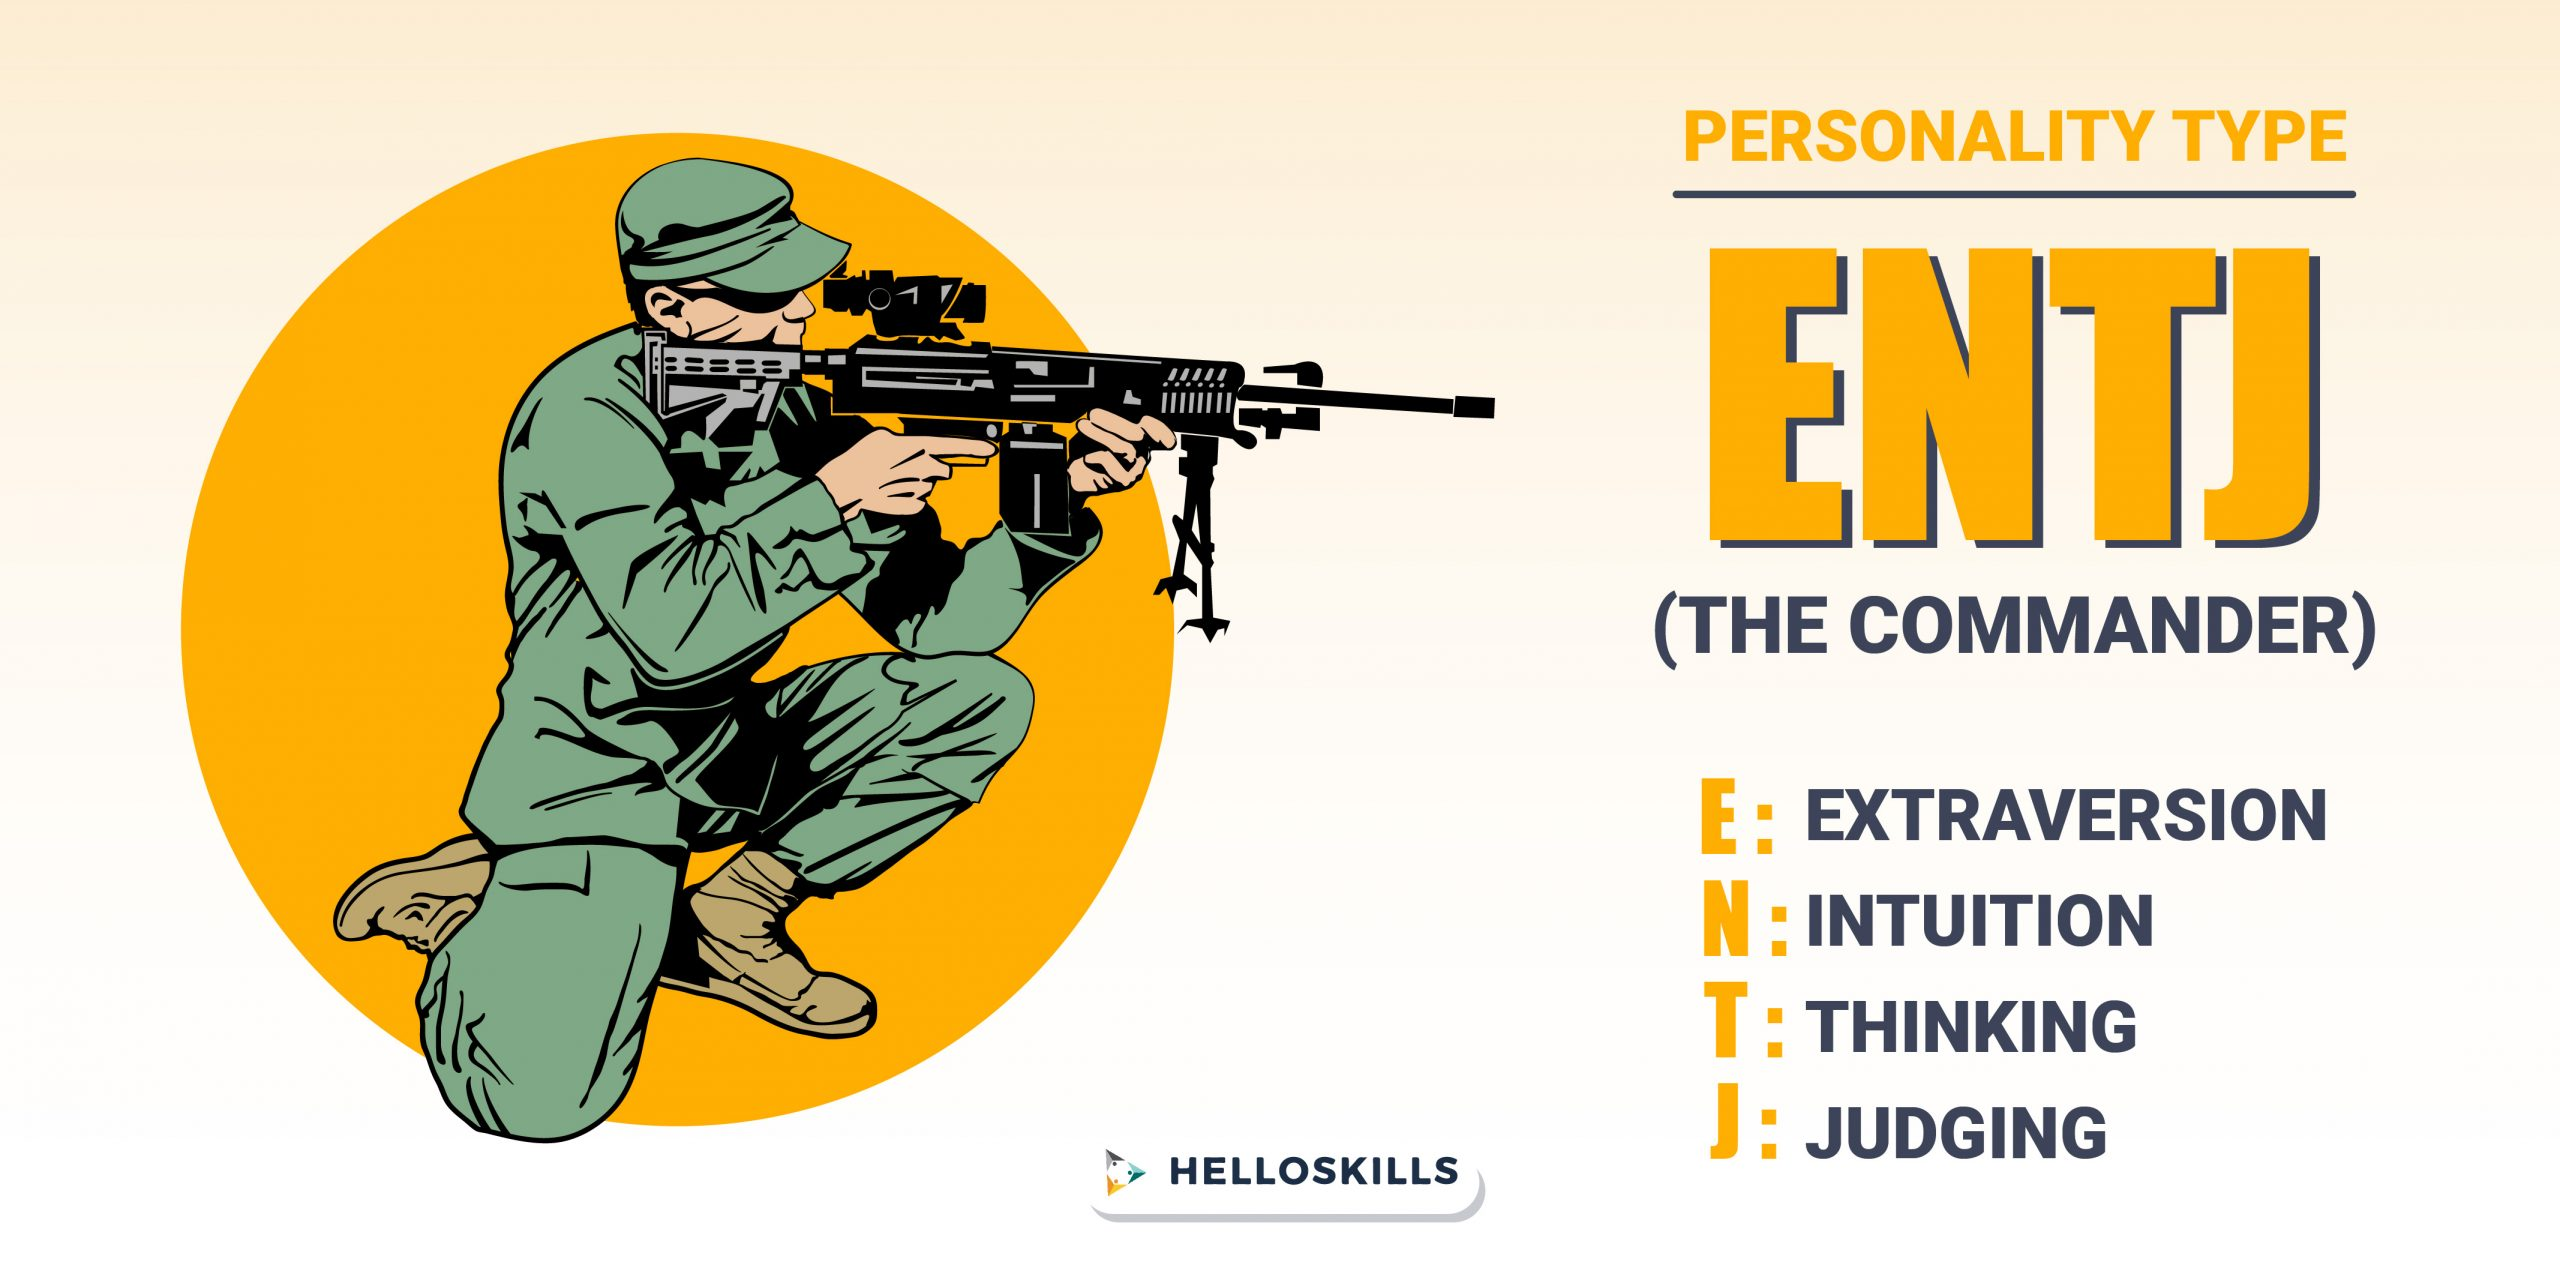 ENTJ- The commander personality